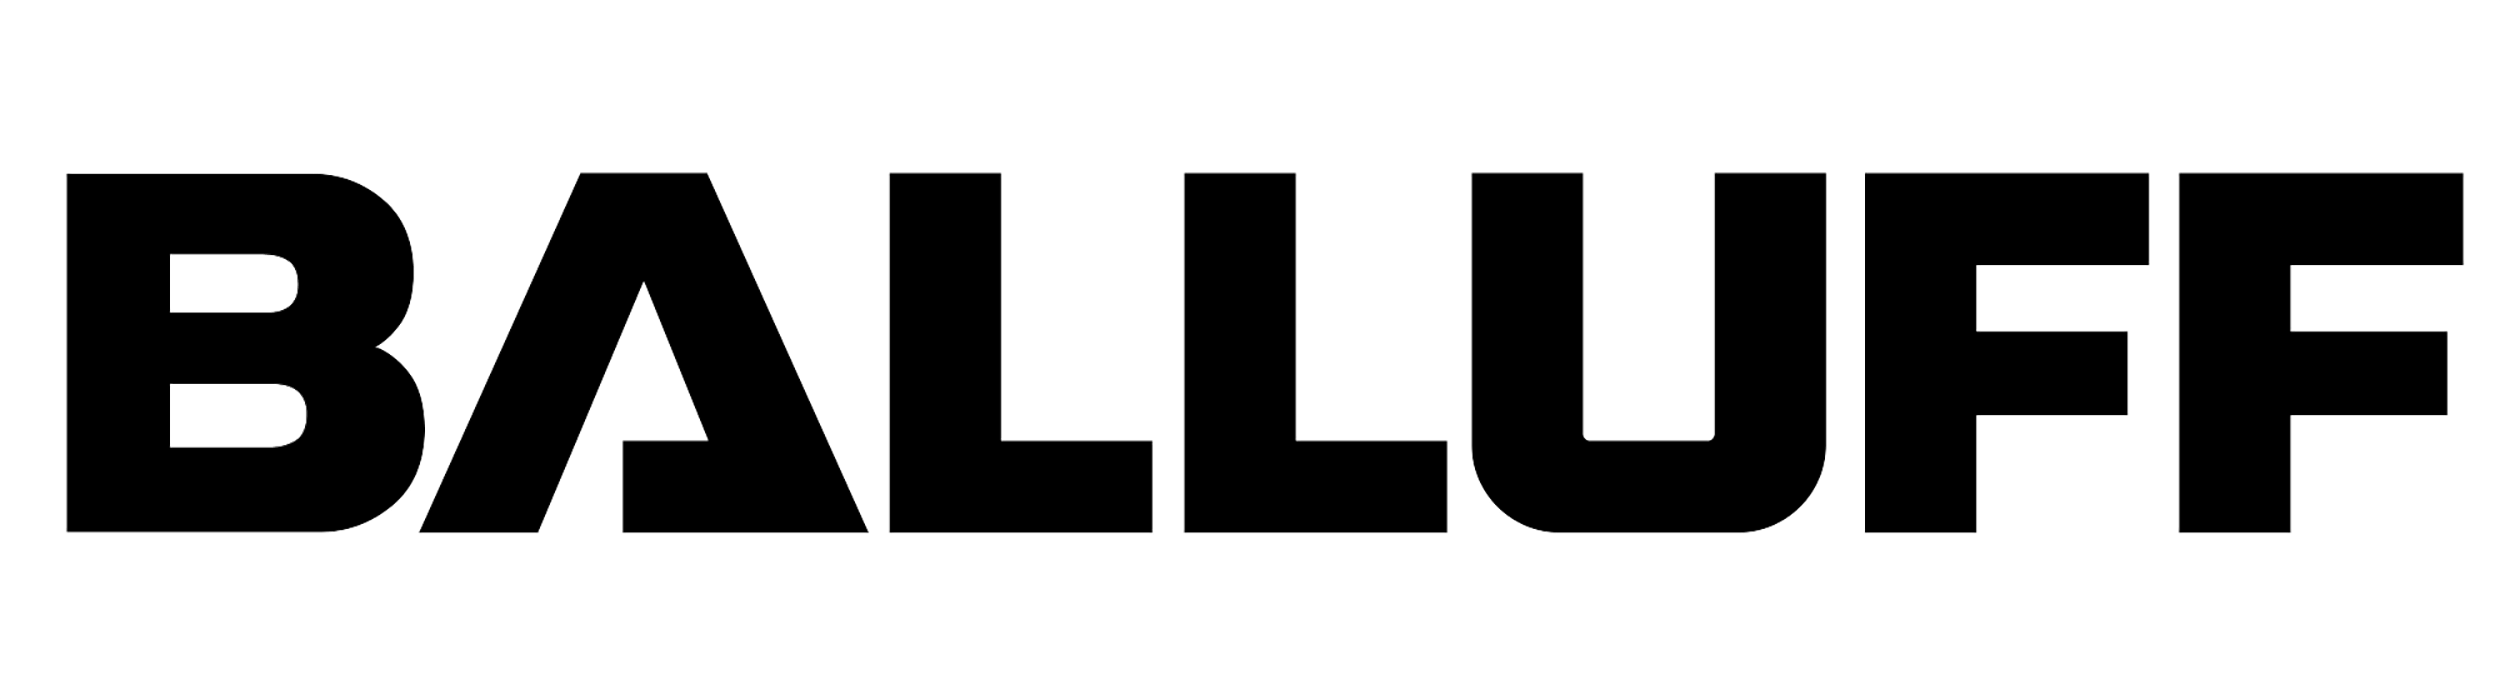 Image result for balluff